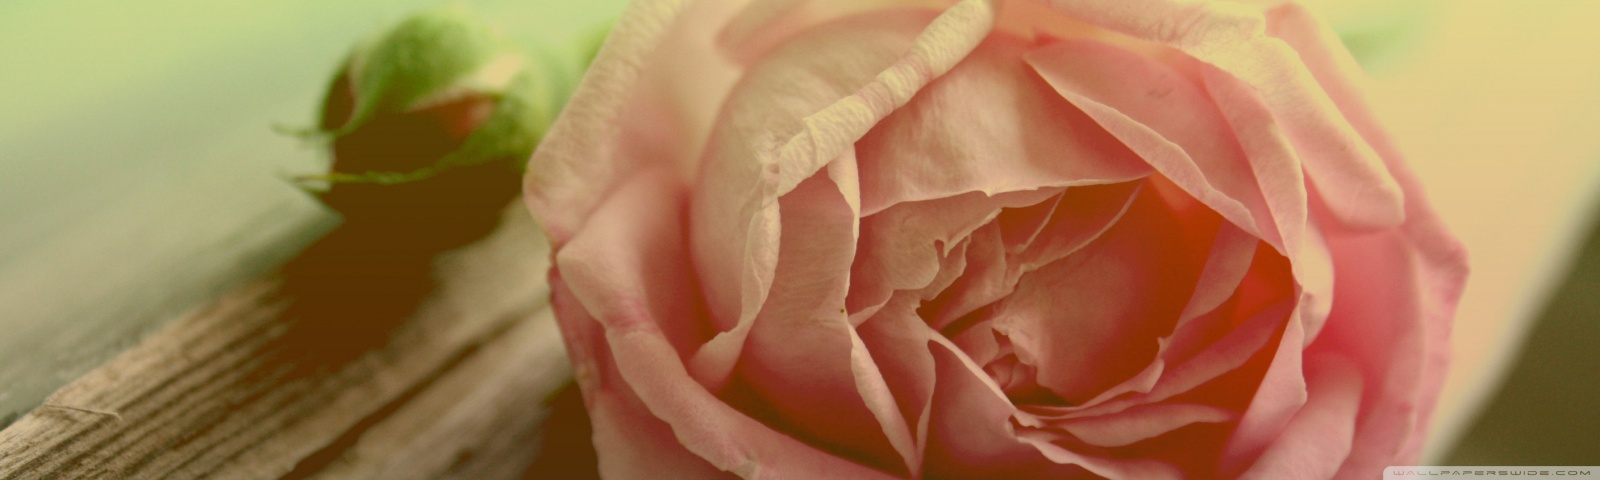 Withered Peach Rose